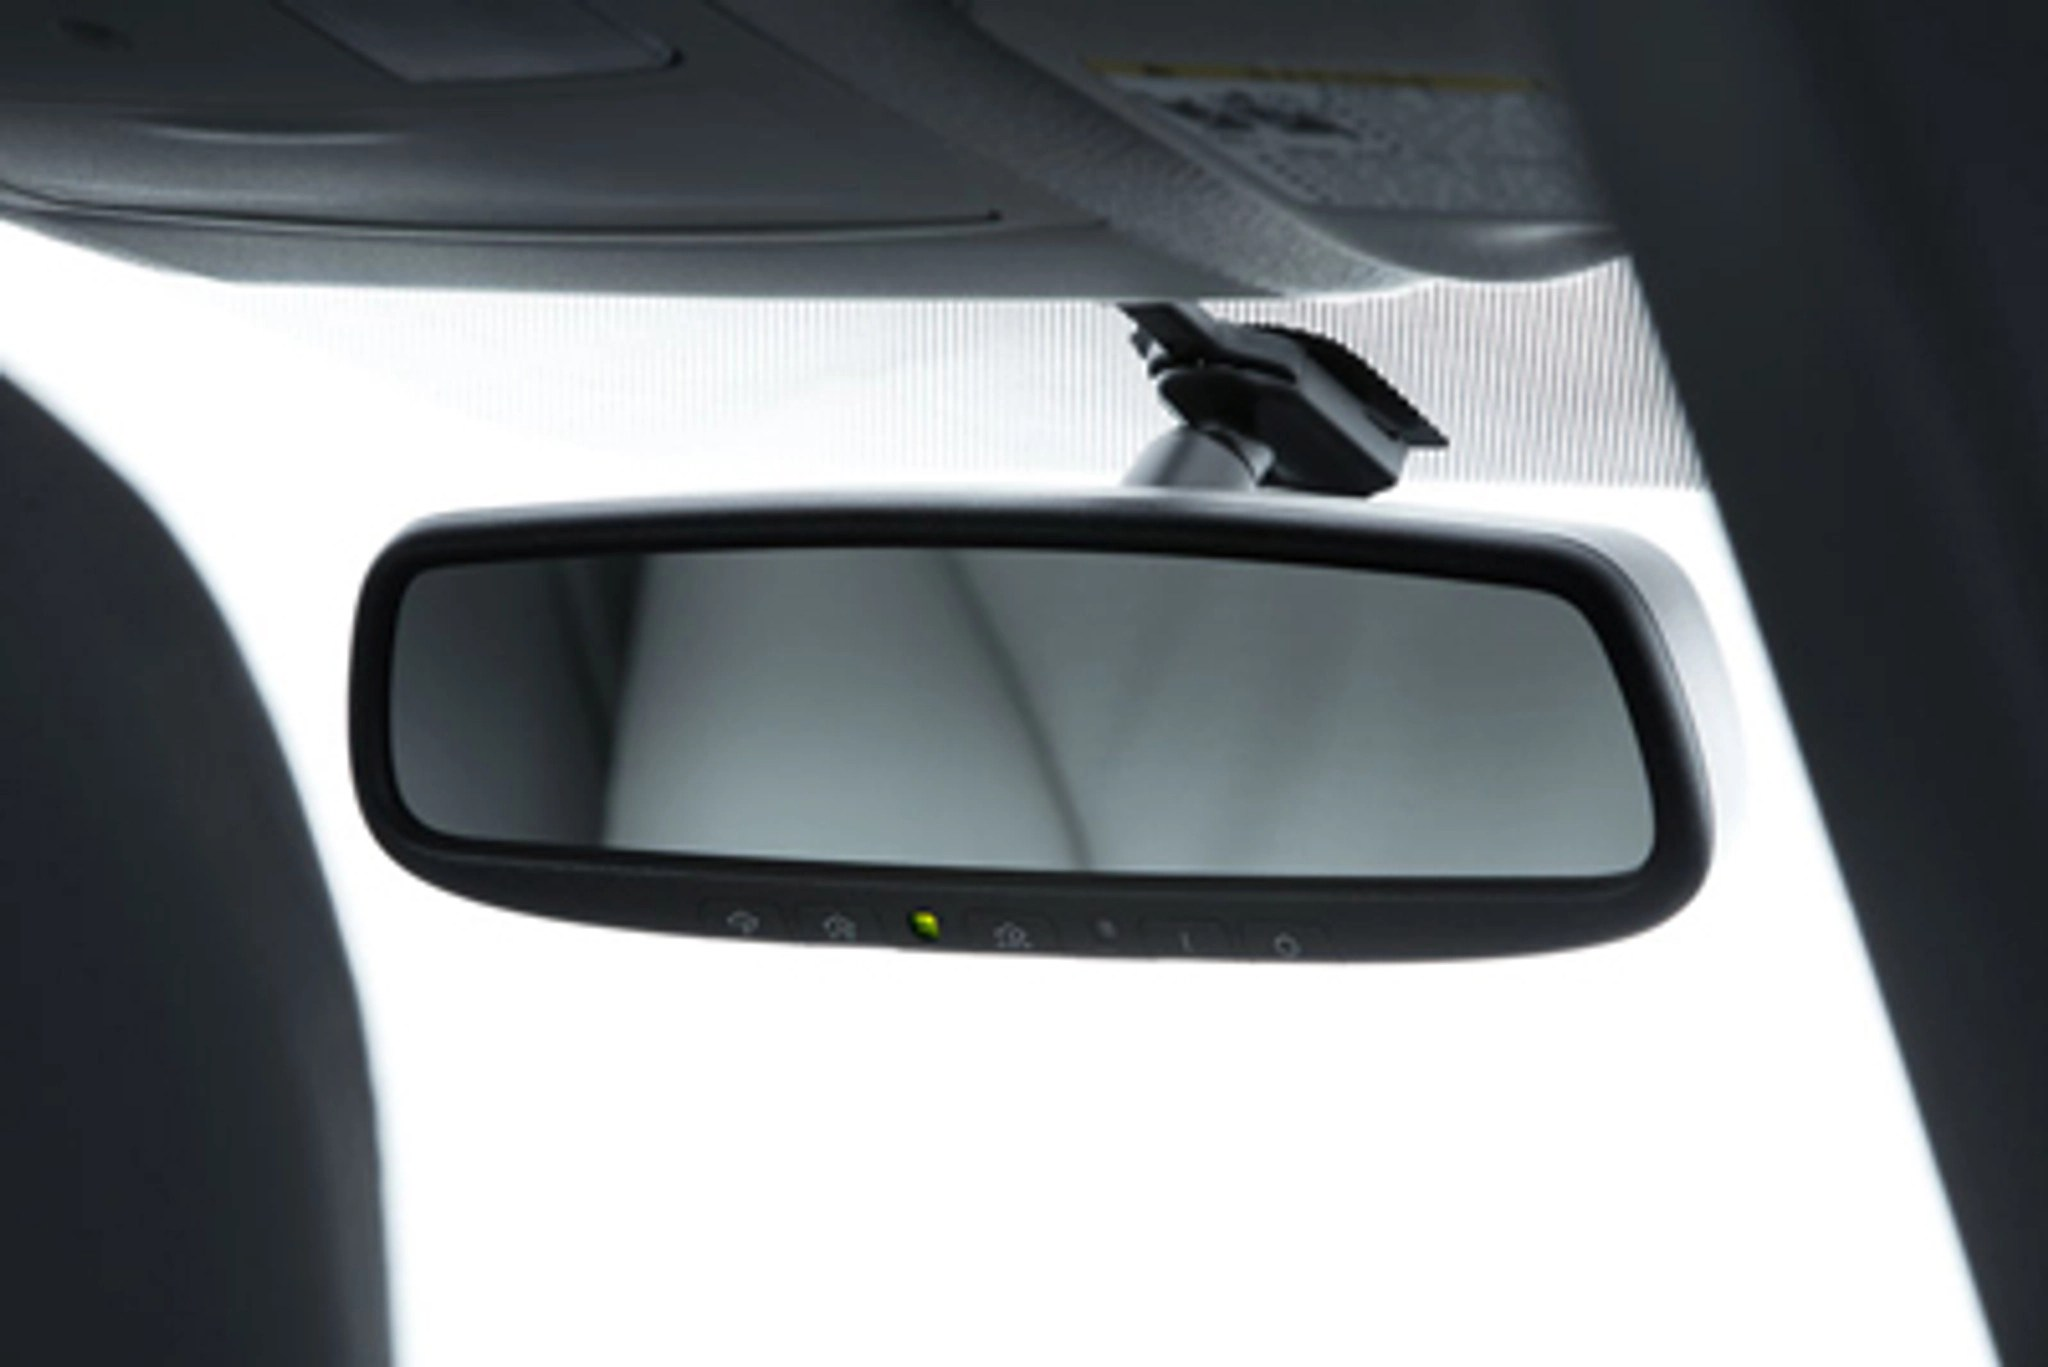 auto dimming mirror with homelink for 2012 2018 toyota prius c [ 2048 x 1367 Pixel ]